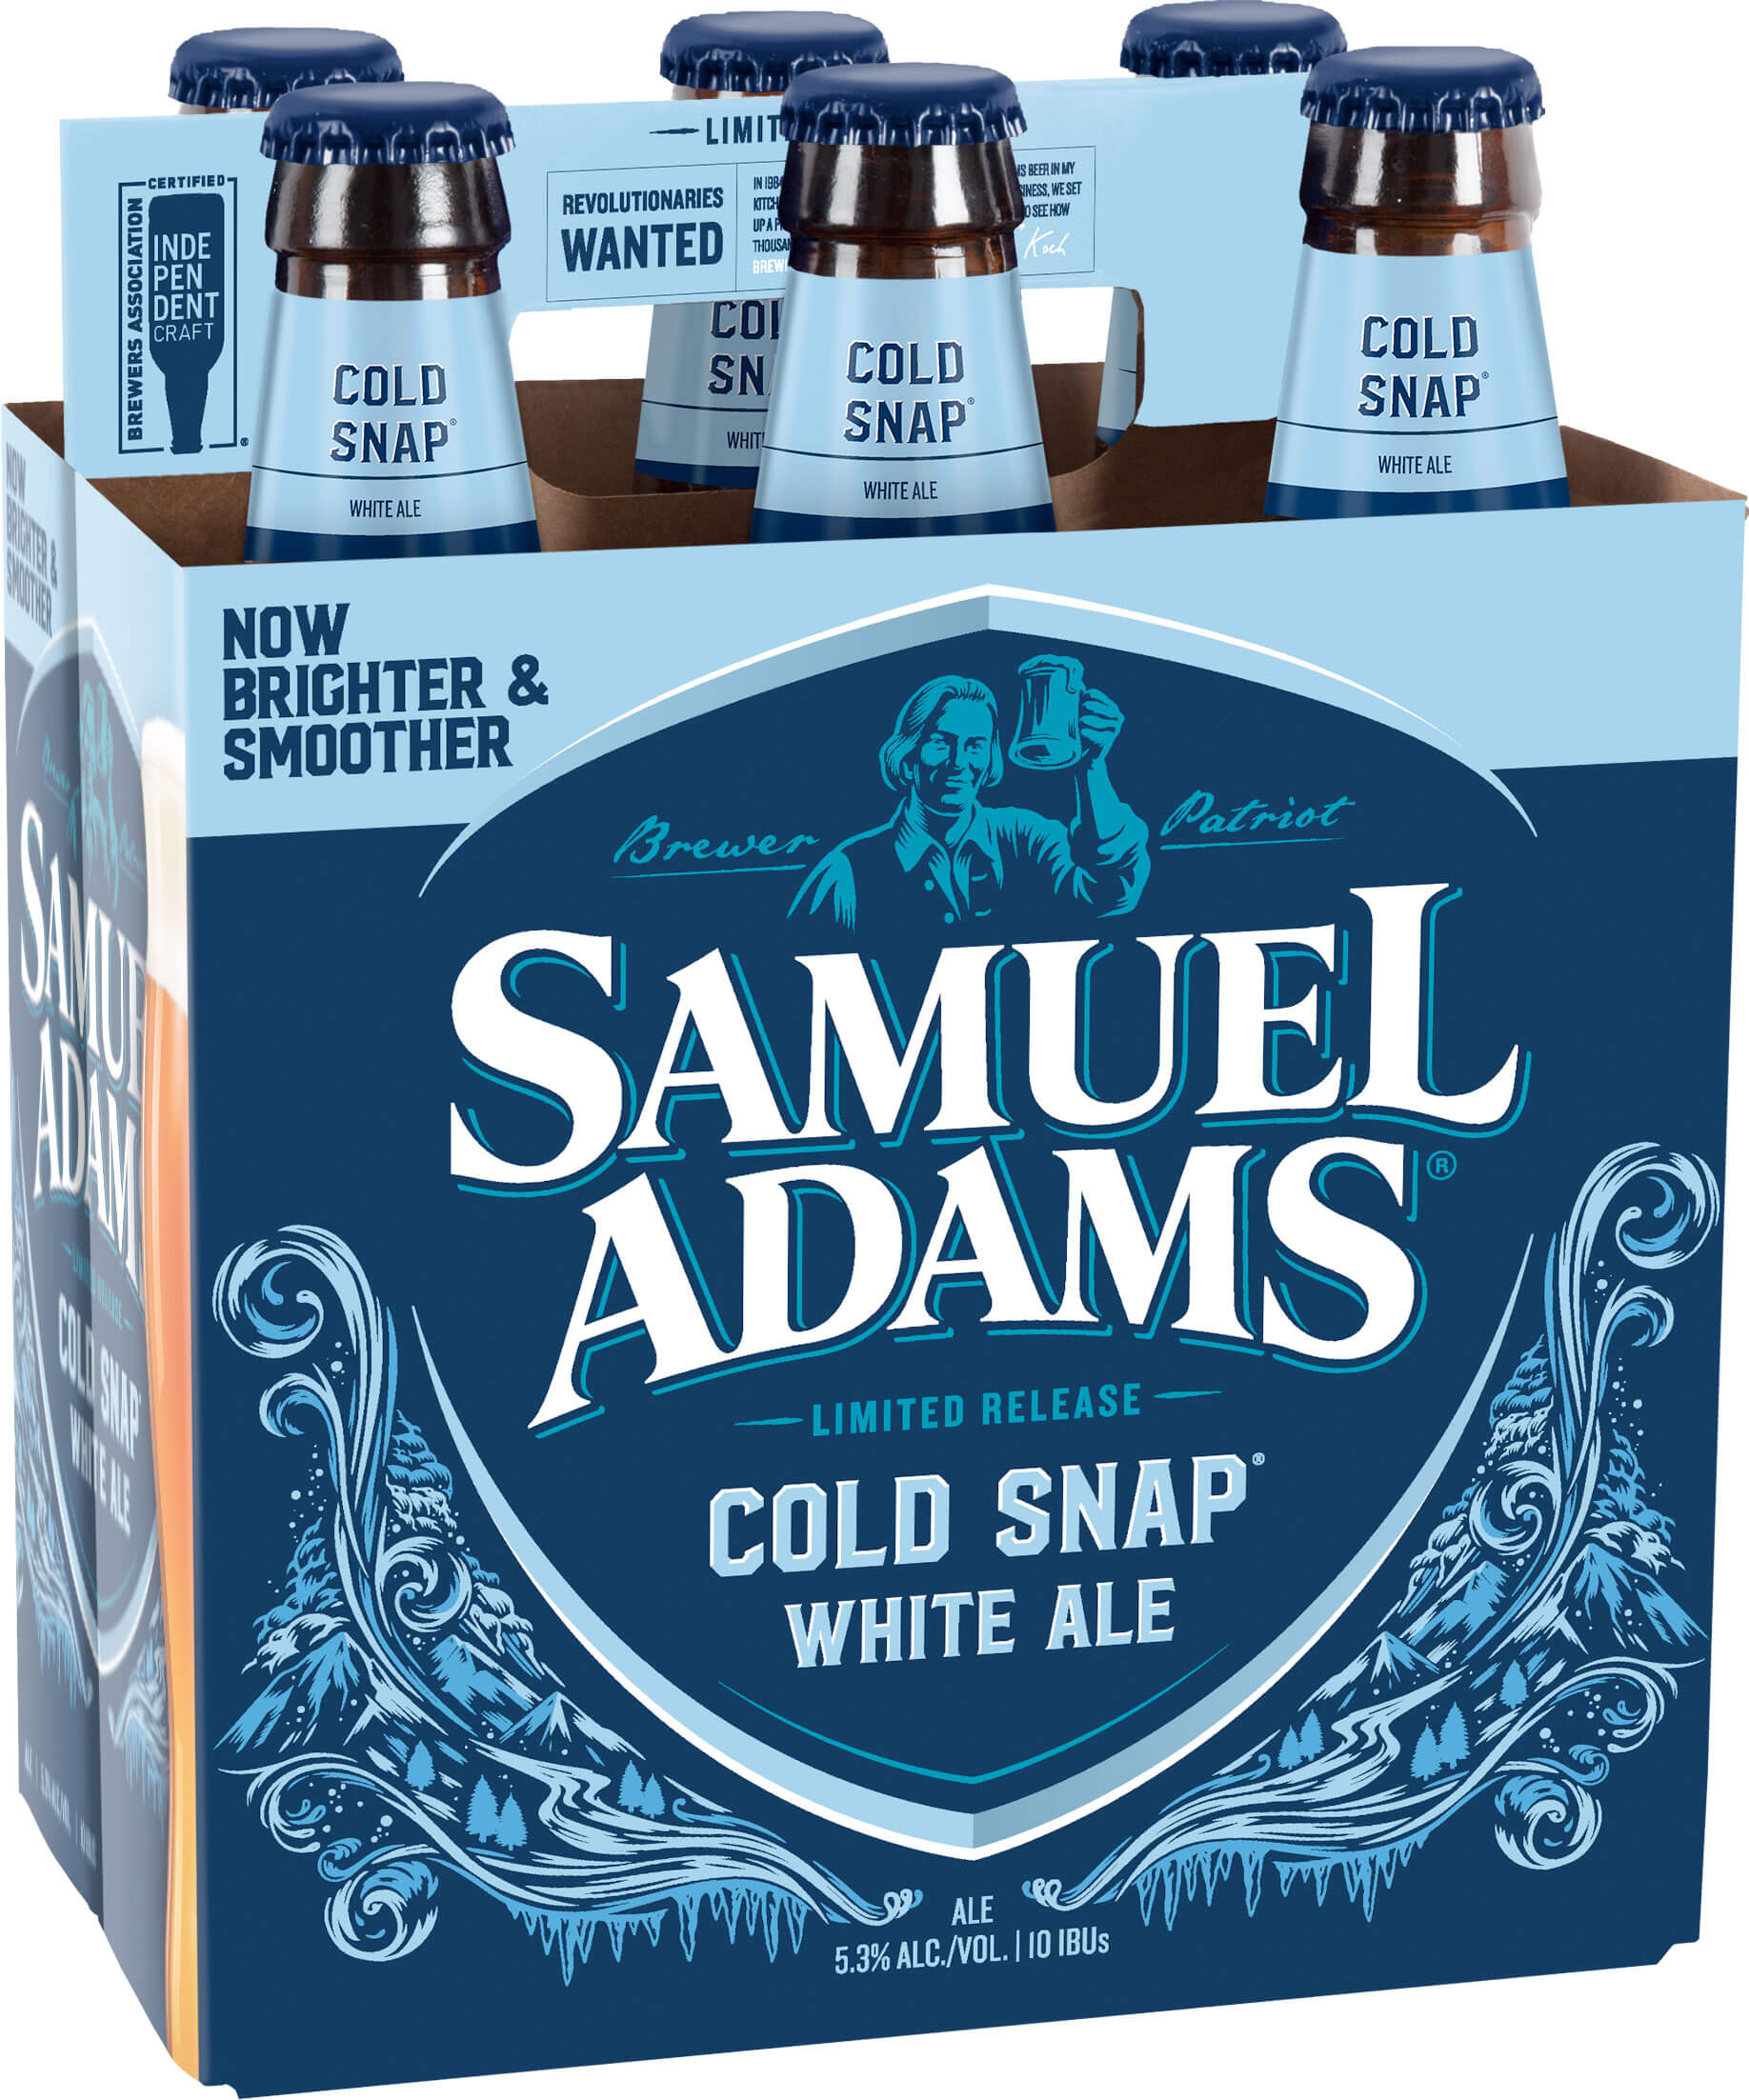 Packaging art for the Samuel Adams Cold Snap by Boston Beer Company